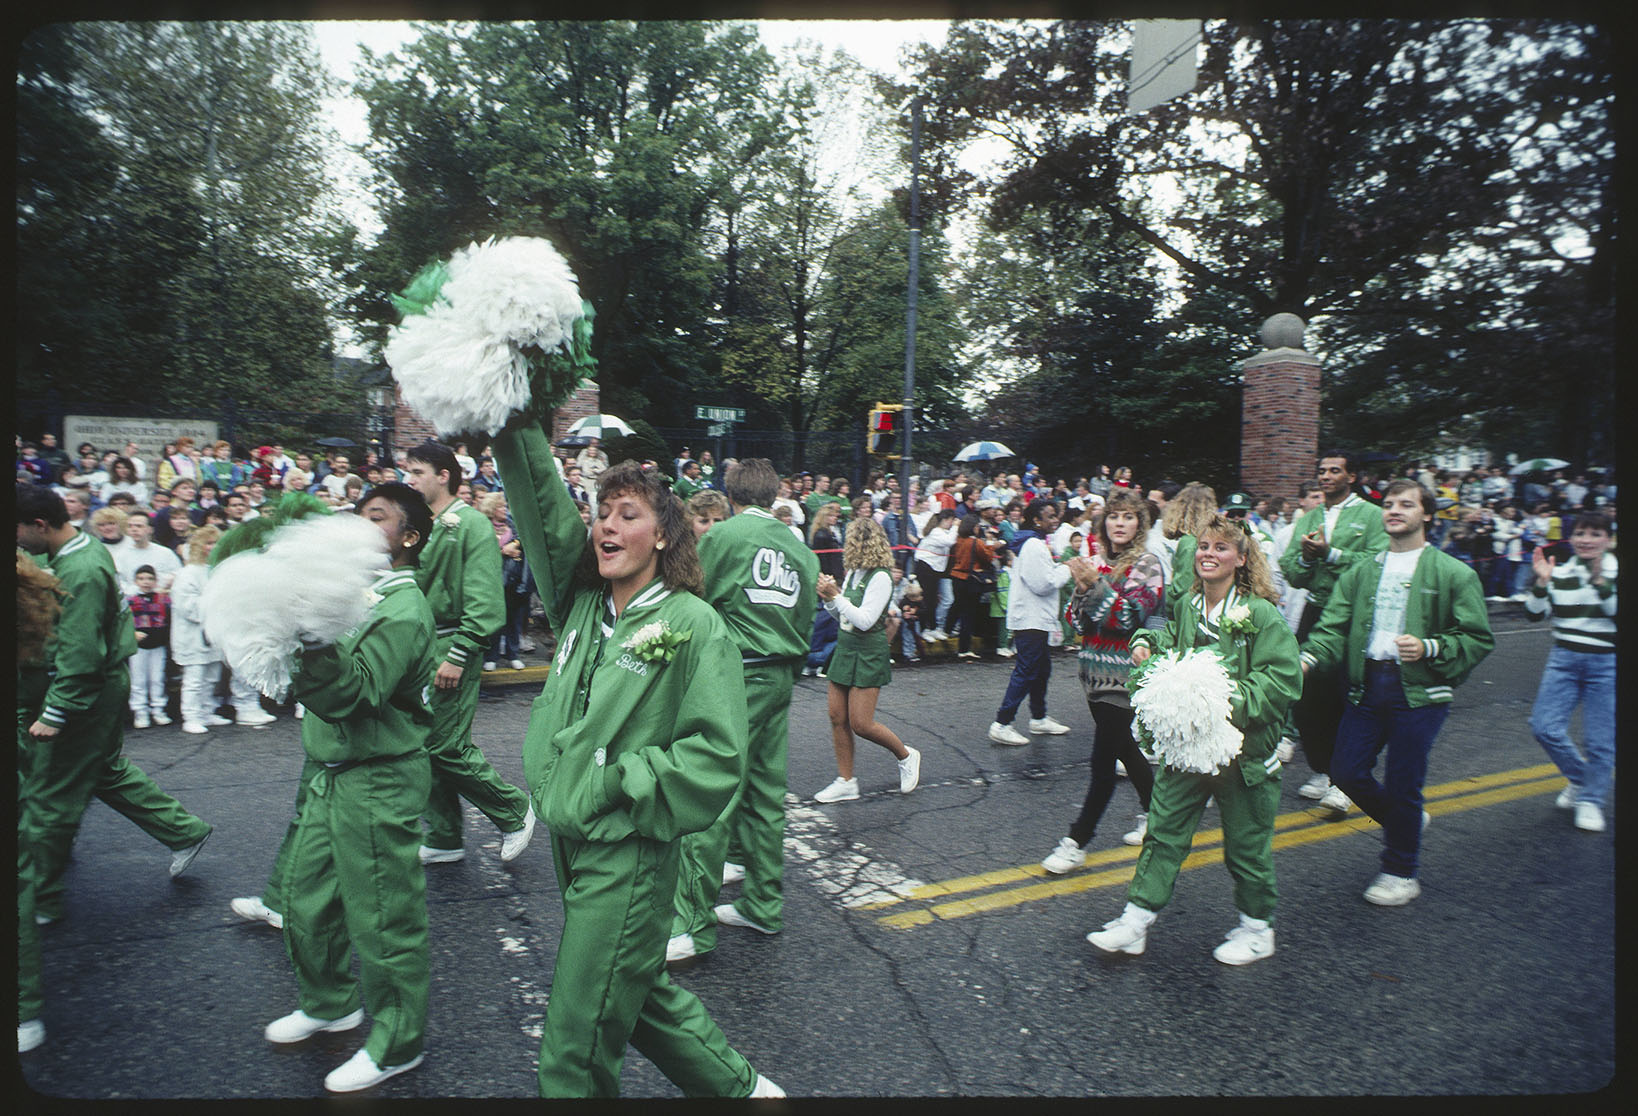 Cheerleaders, Ohio University homecoming parade, 1990